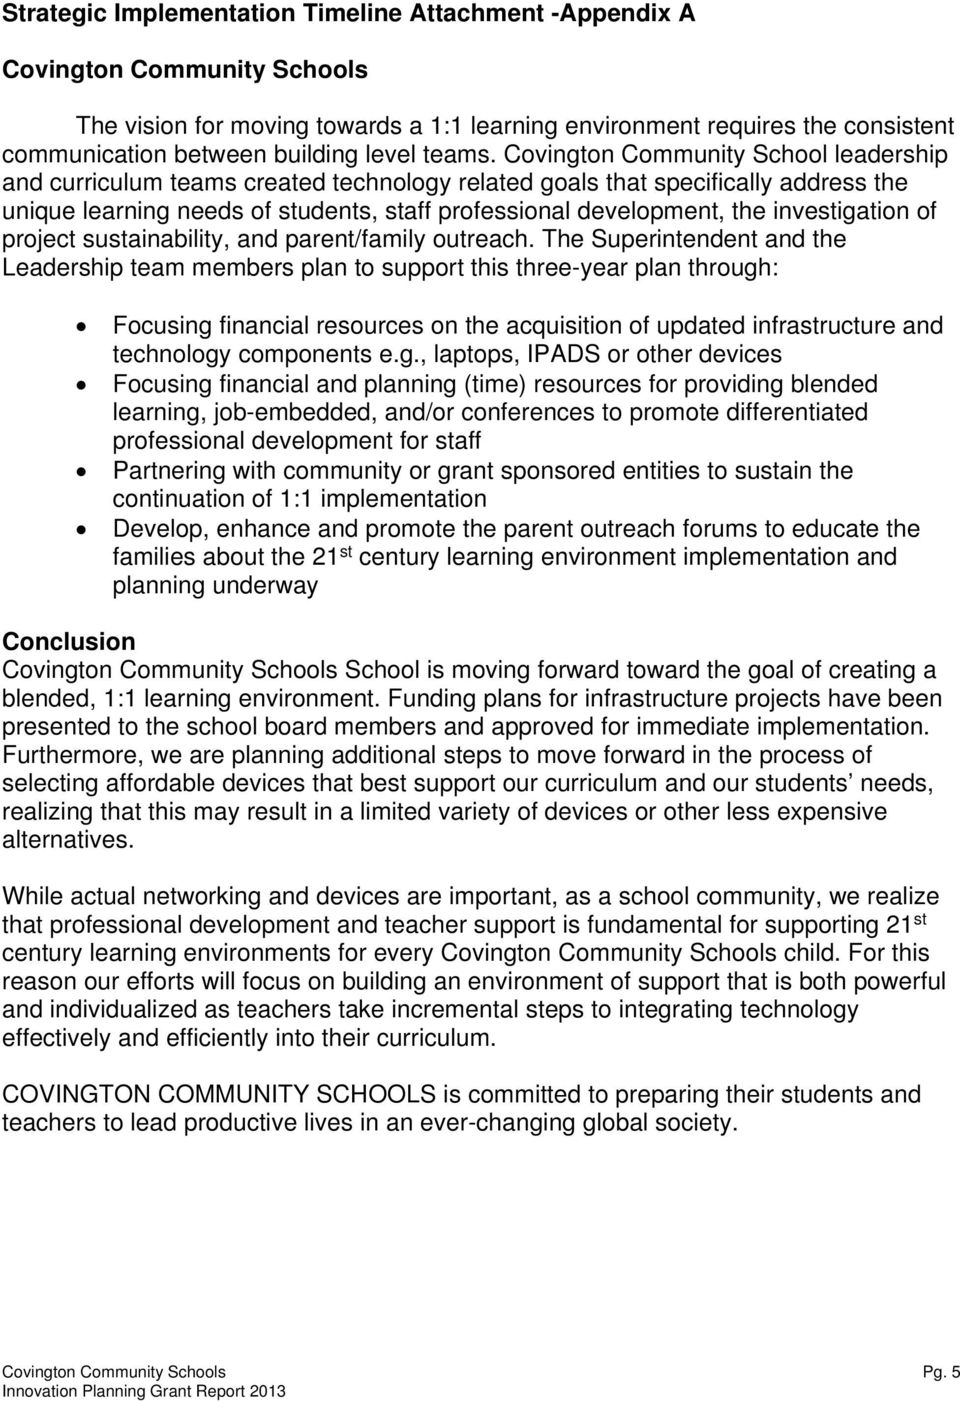 Covington Community School leadership and curriculum teams created technology related goals that specifically address the unique learning needs of students, staff professional development, the